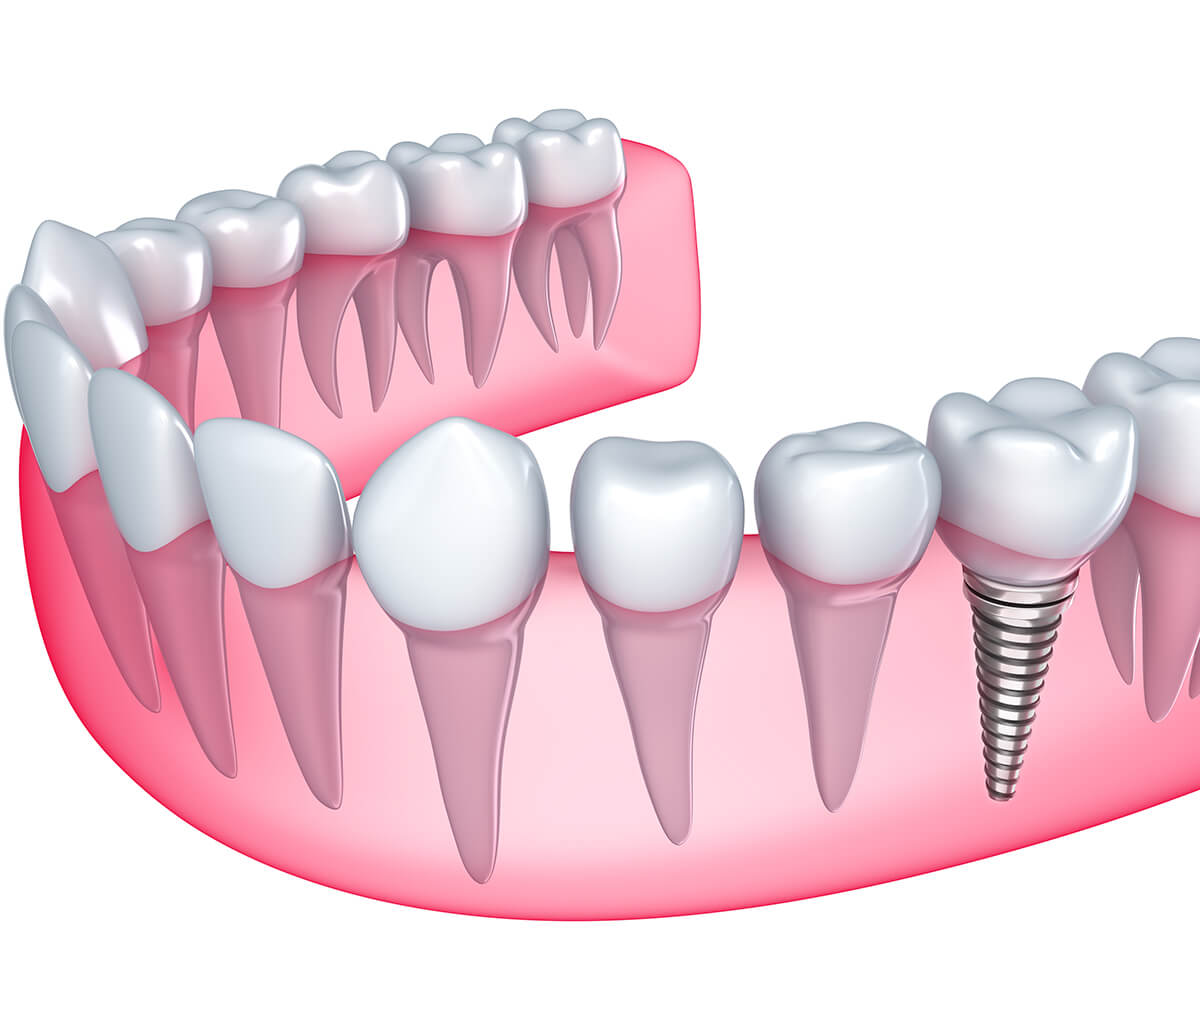 Why You Should Consider Dental Implants for Missing Teeth in Lakewood, CO Area